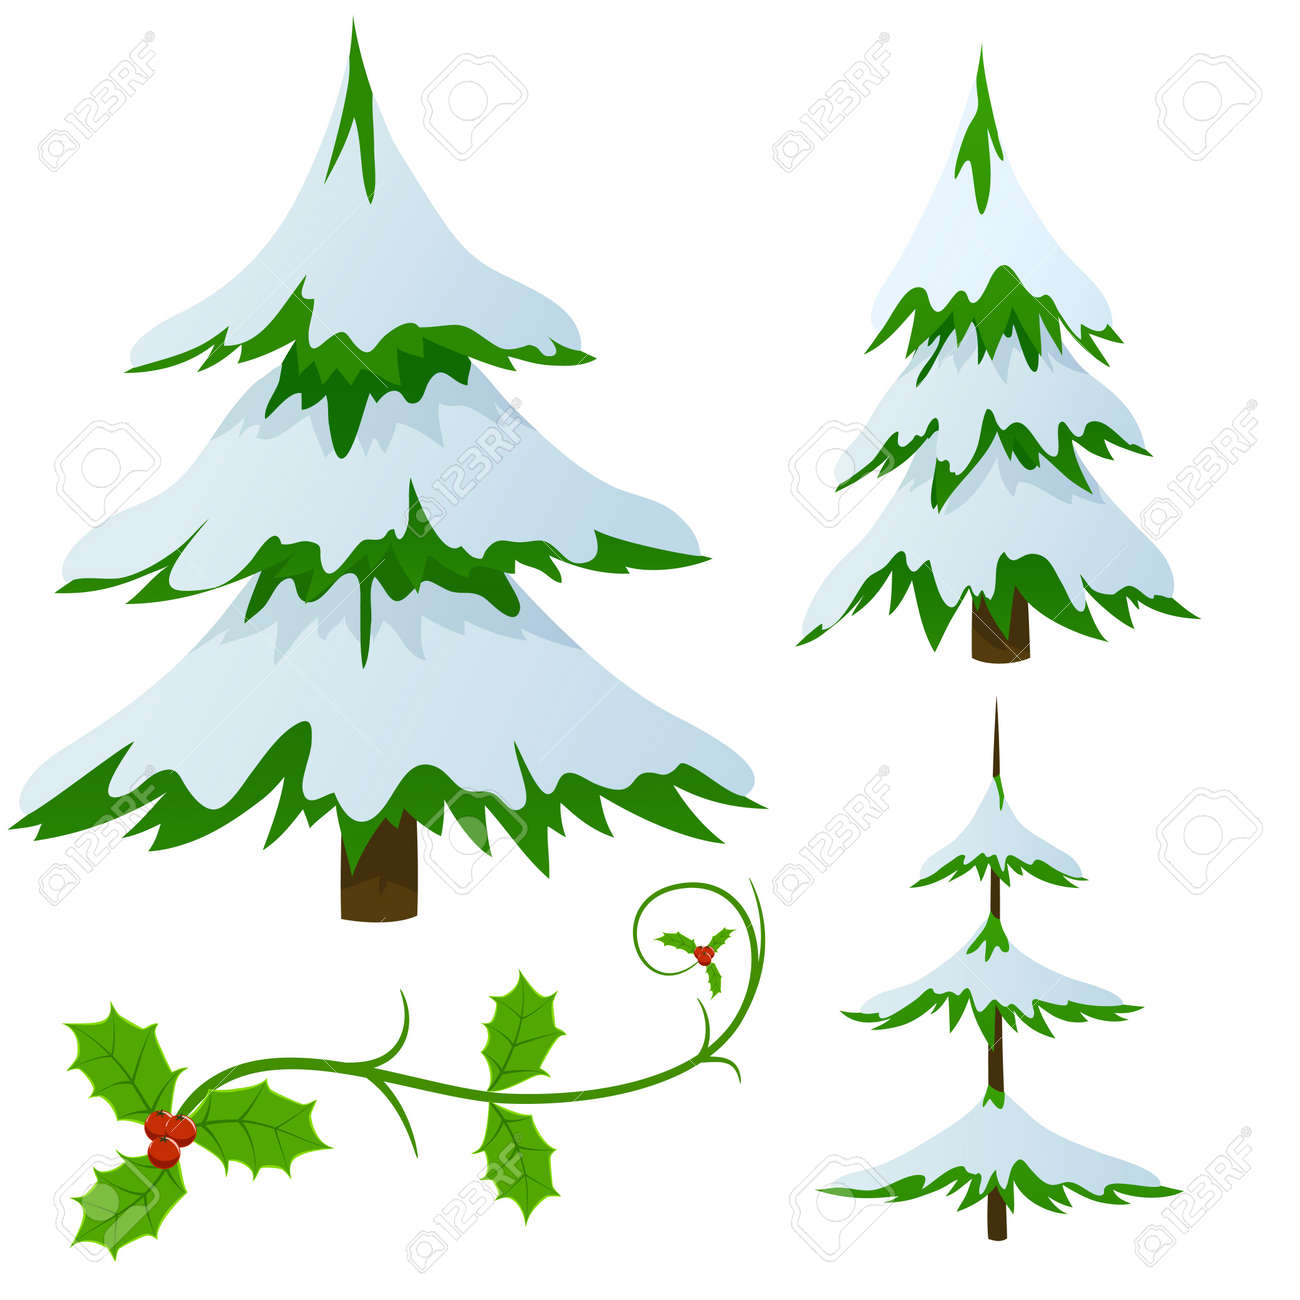 Set of snow covered fir trees and holly christmas decorated branch. Vector illustration. Stock Vector - 11536159